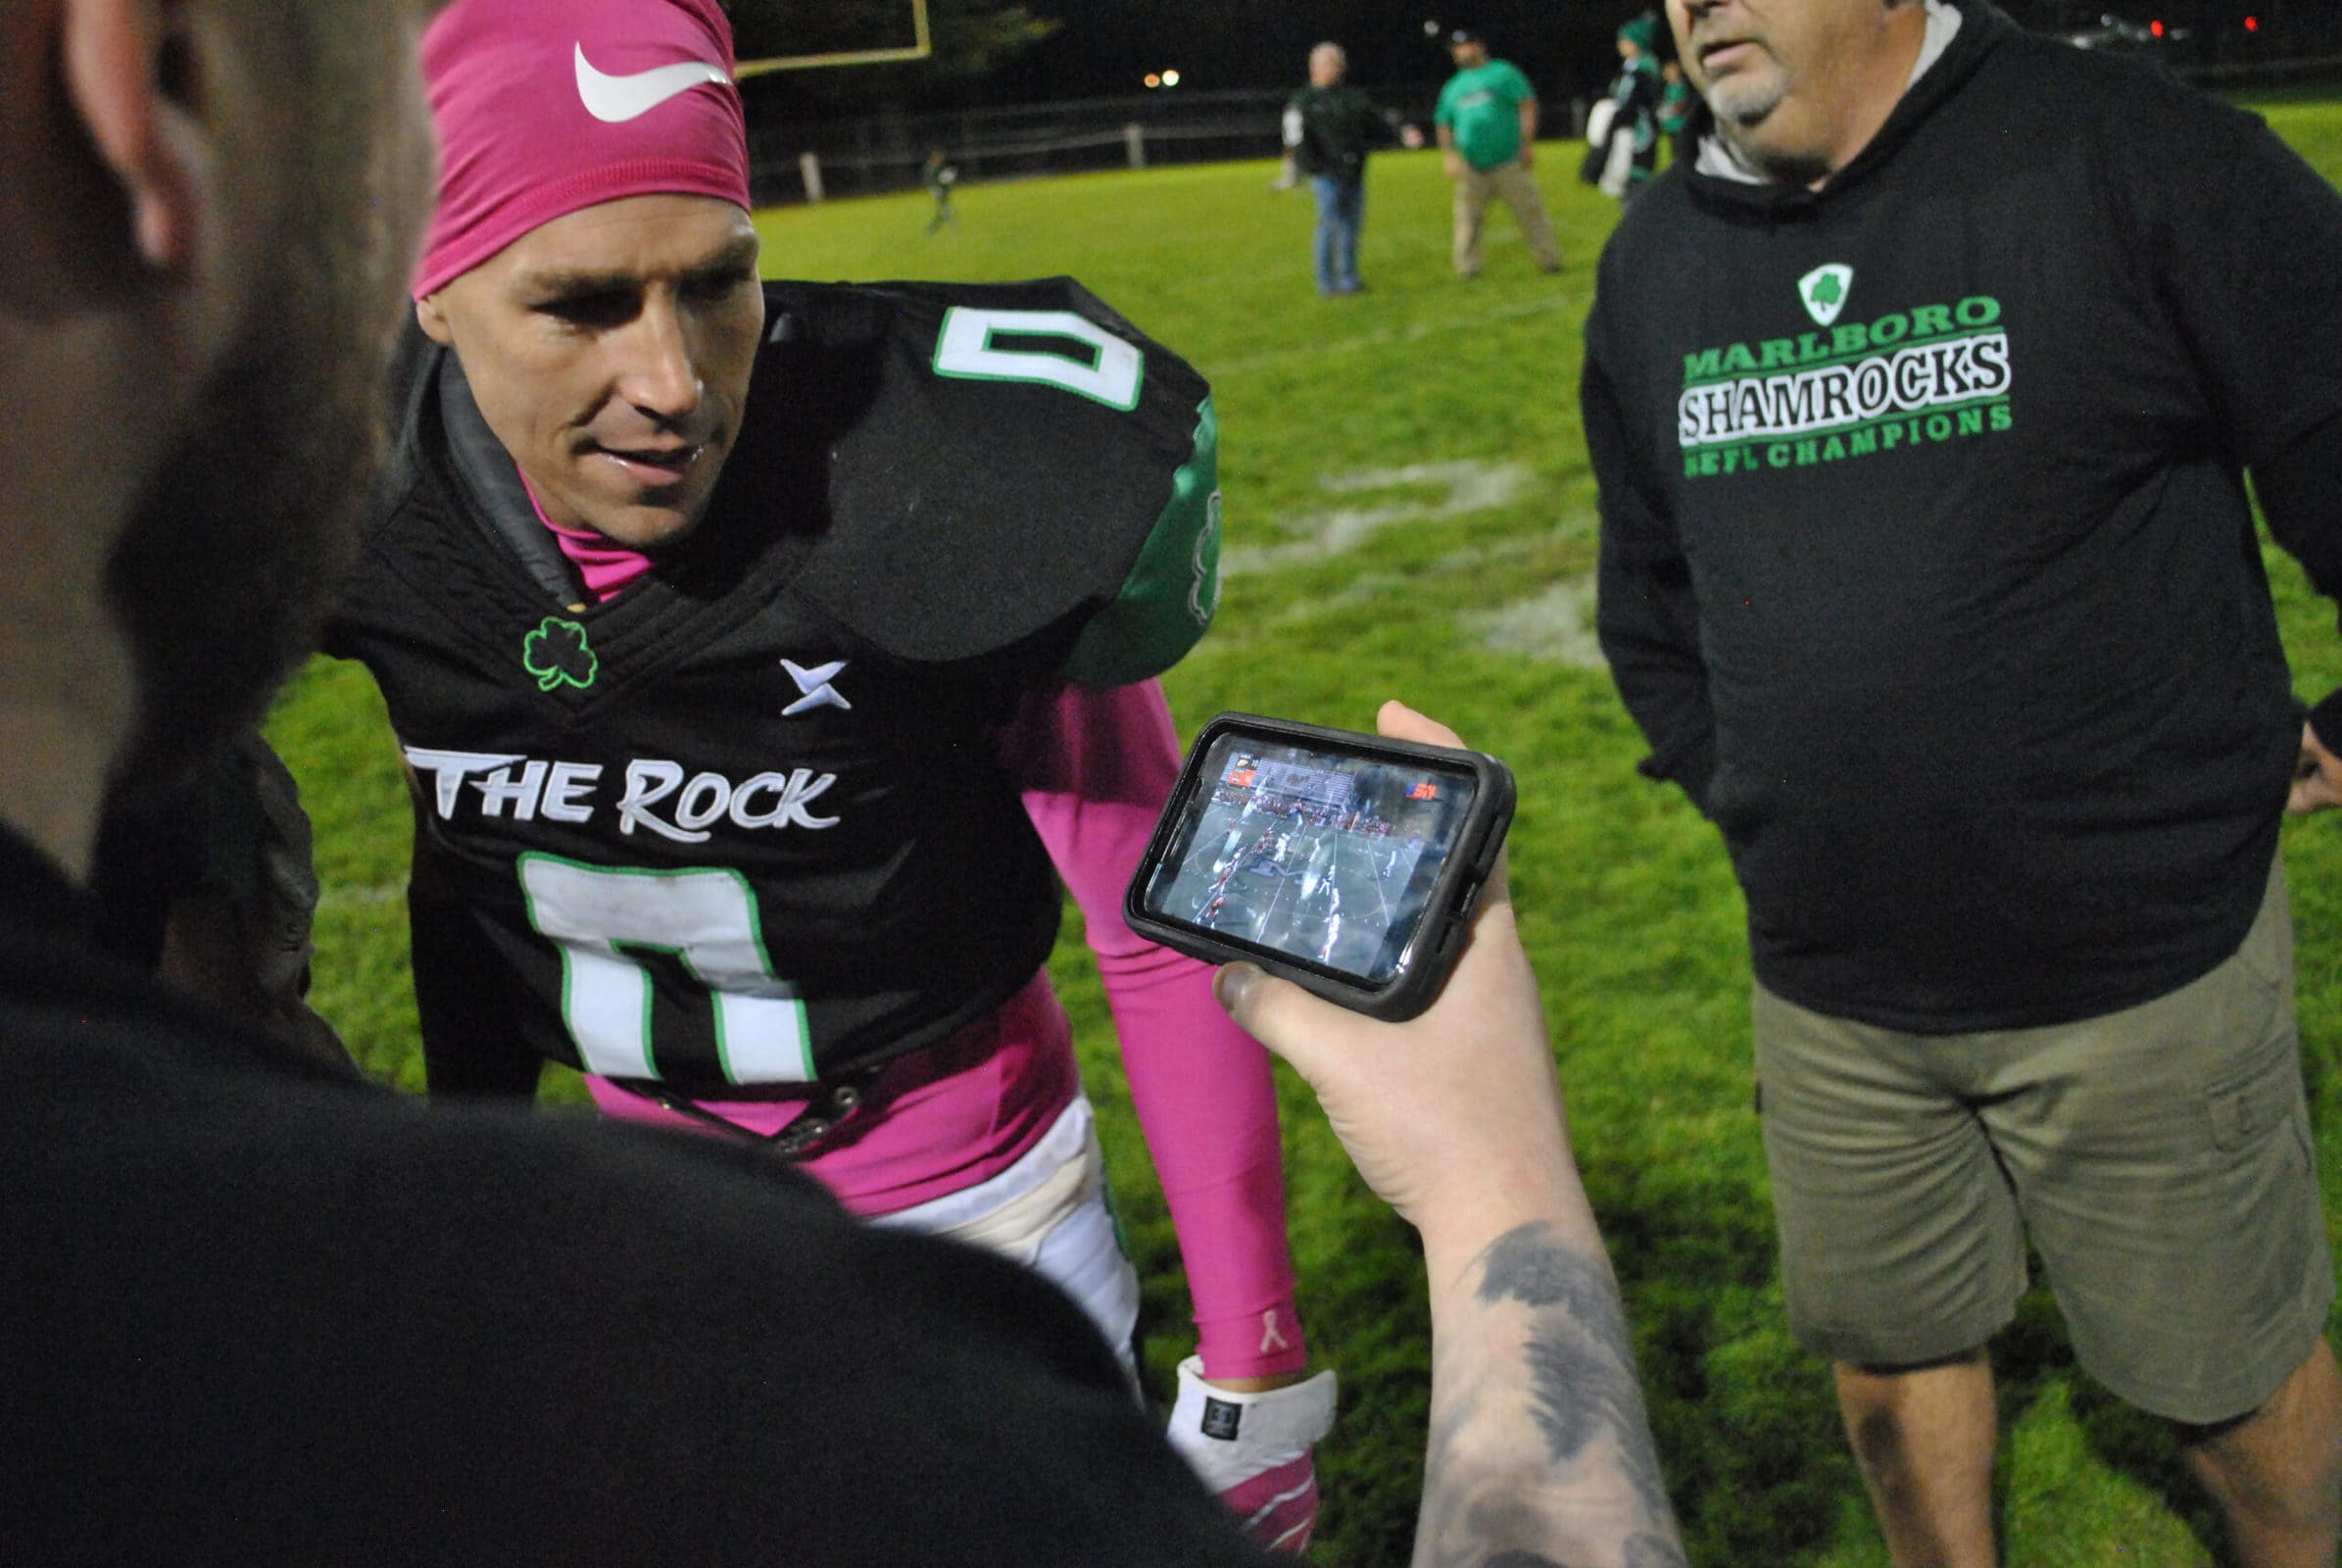 Shamrocks offensive coordinator Harrison Ingles watches a livestream on his phone after Marlborough's victory, Oct. 9, to see who the Shamrocks would face in the championship. Photos/Dakota Antelman